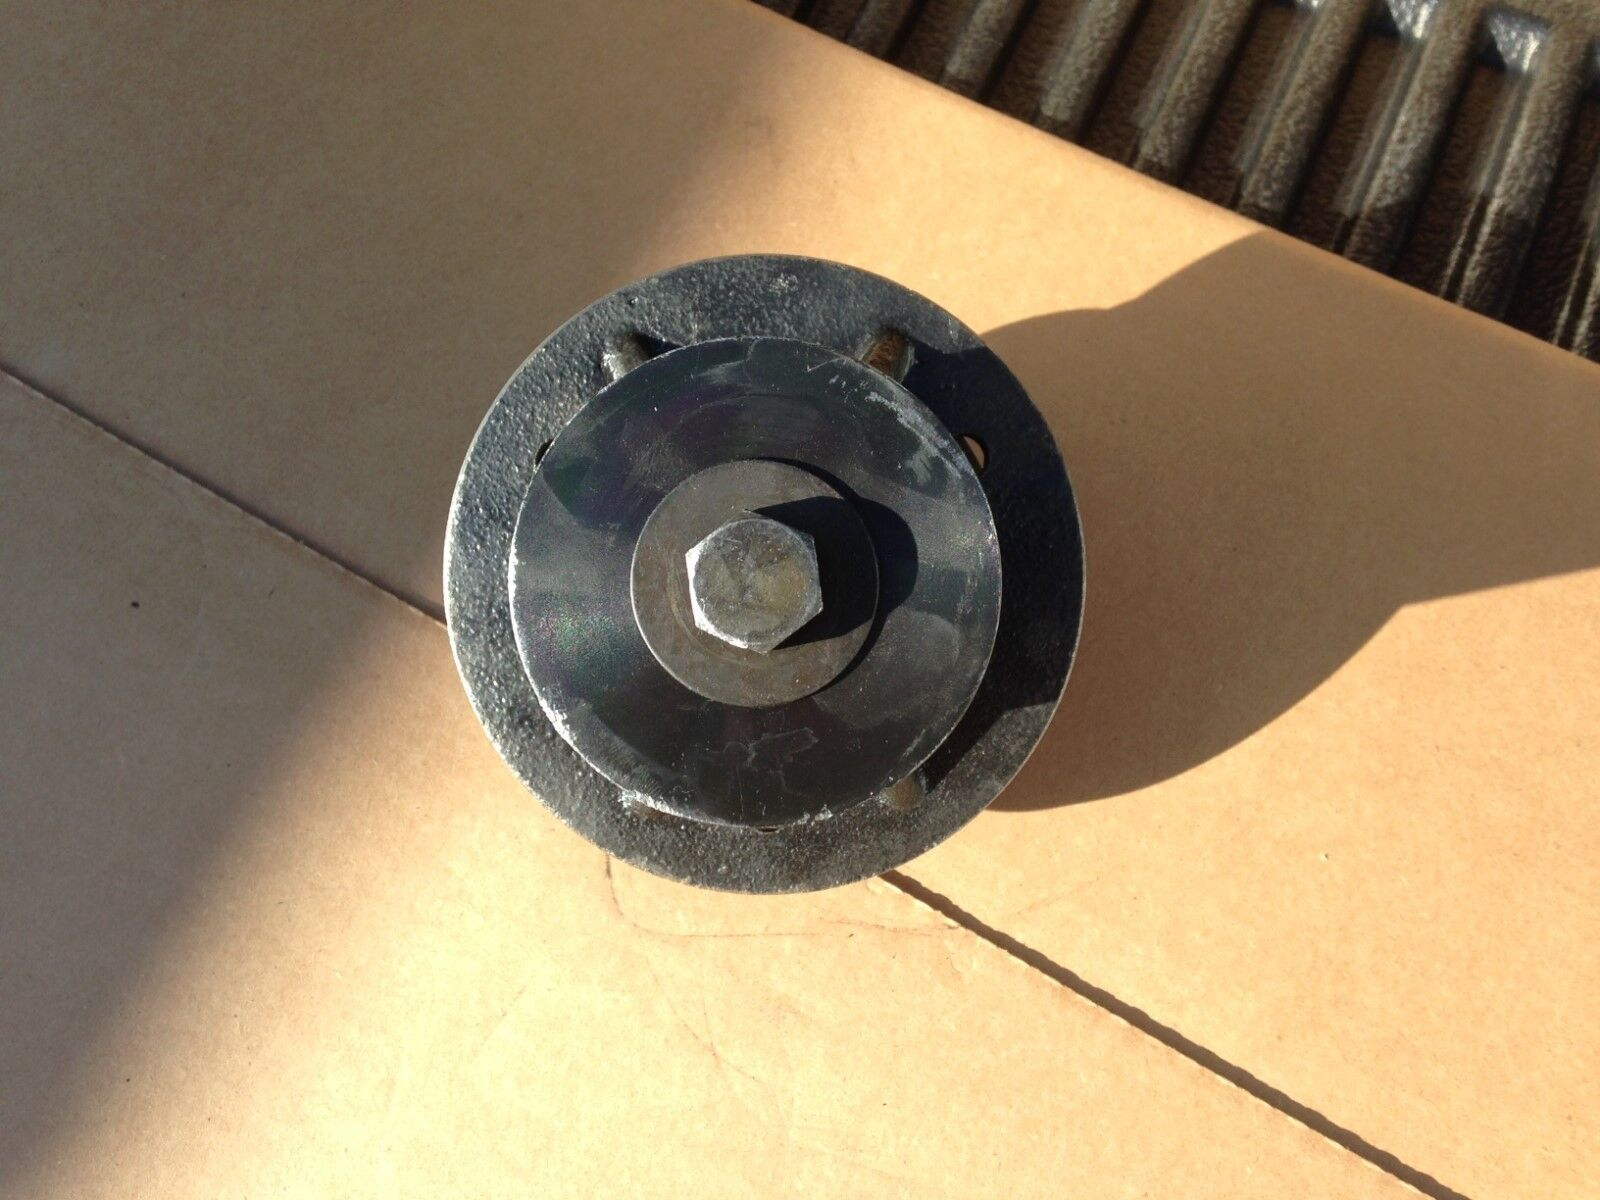 Replacement King Kutter Finish Mower Spindle Code 502303 with Free Shipping  | Shopping Bin - Search eBay faster